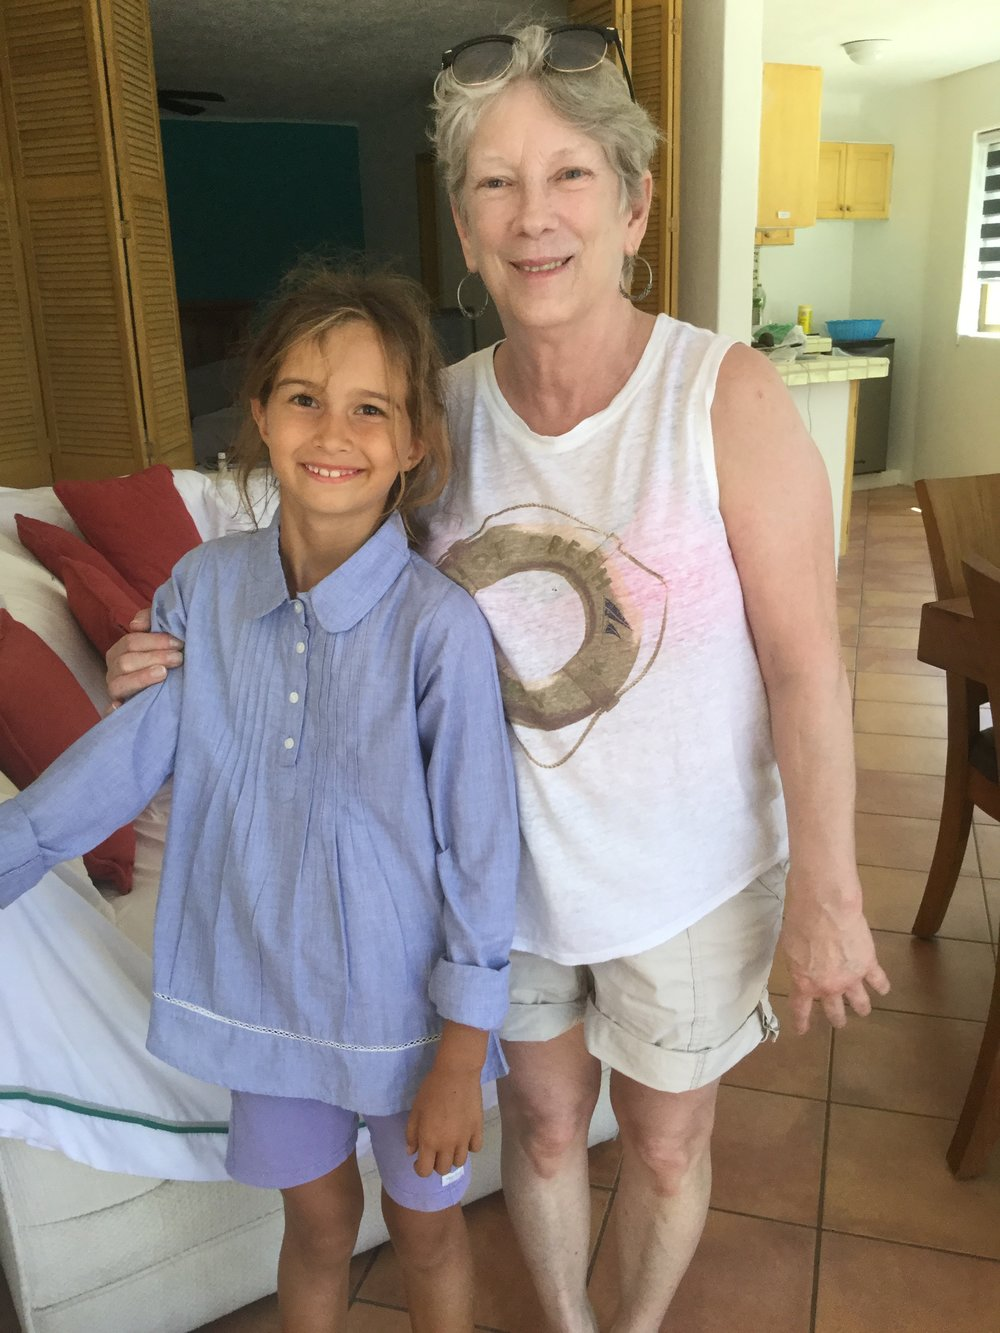 Getting ready for going riding. Lili is wearing a new shirt that she declared would be perfect for riding - and she has used it on a few rides already.